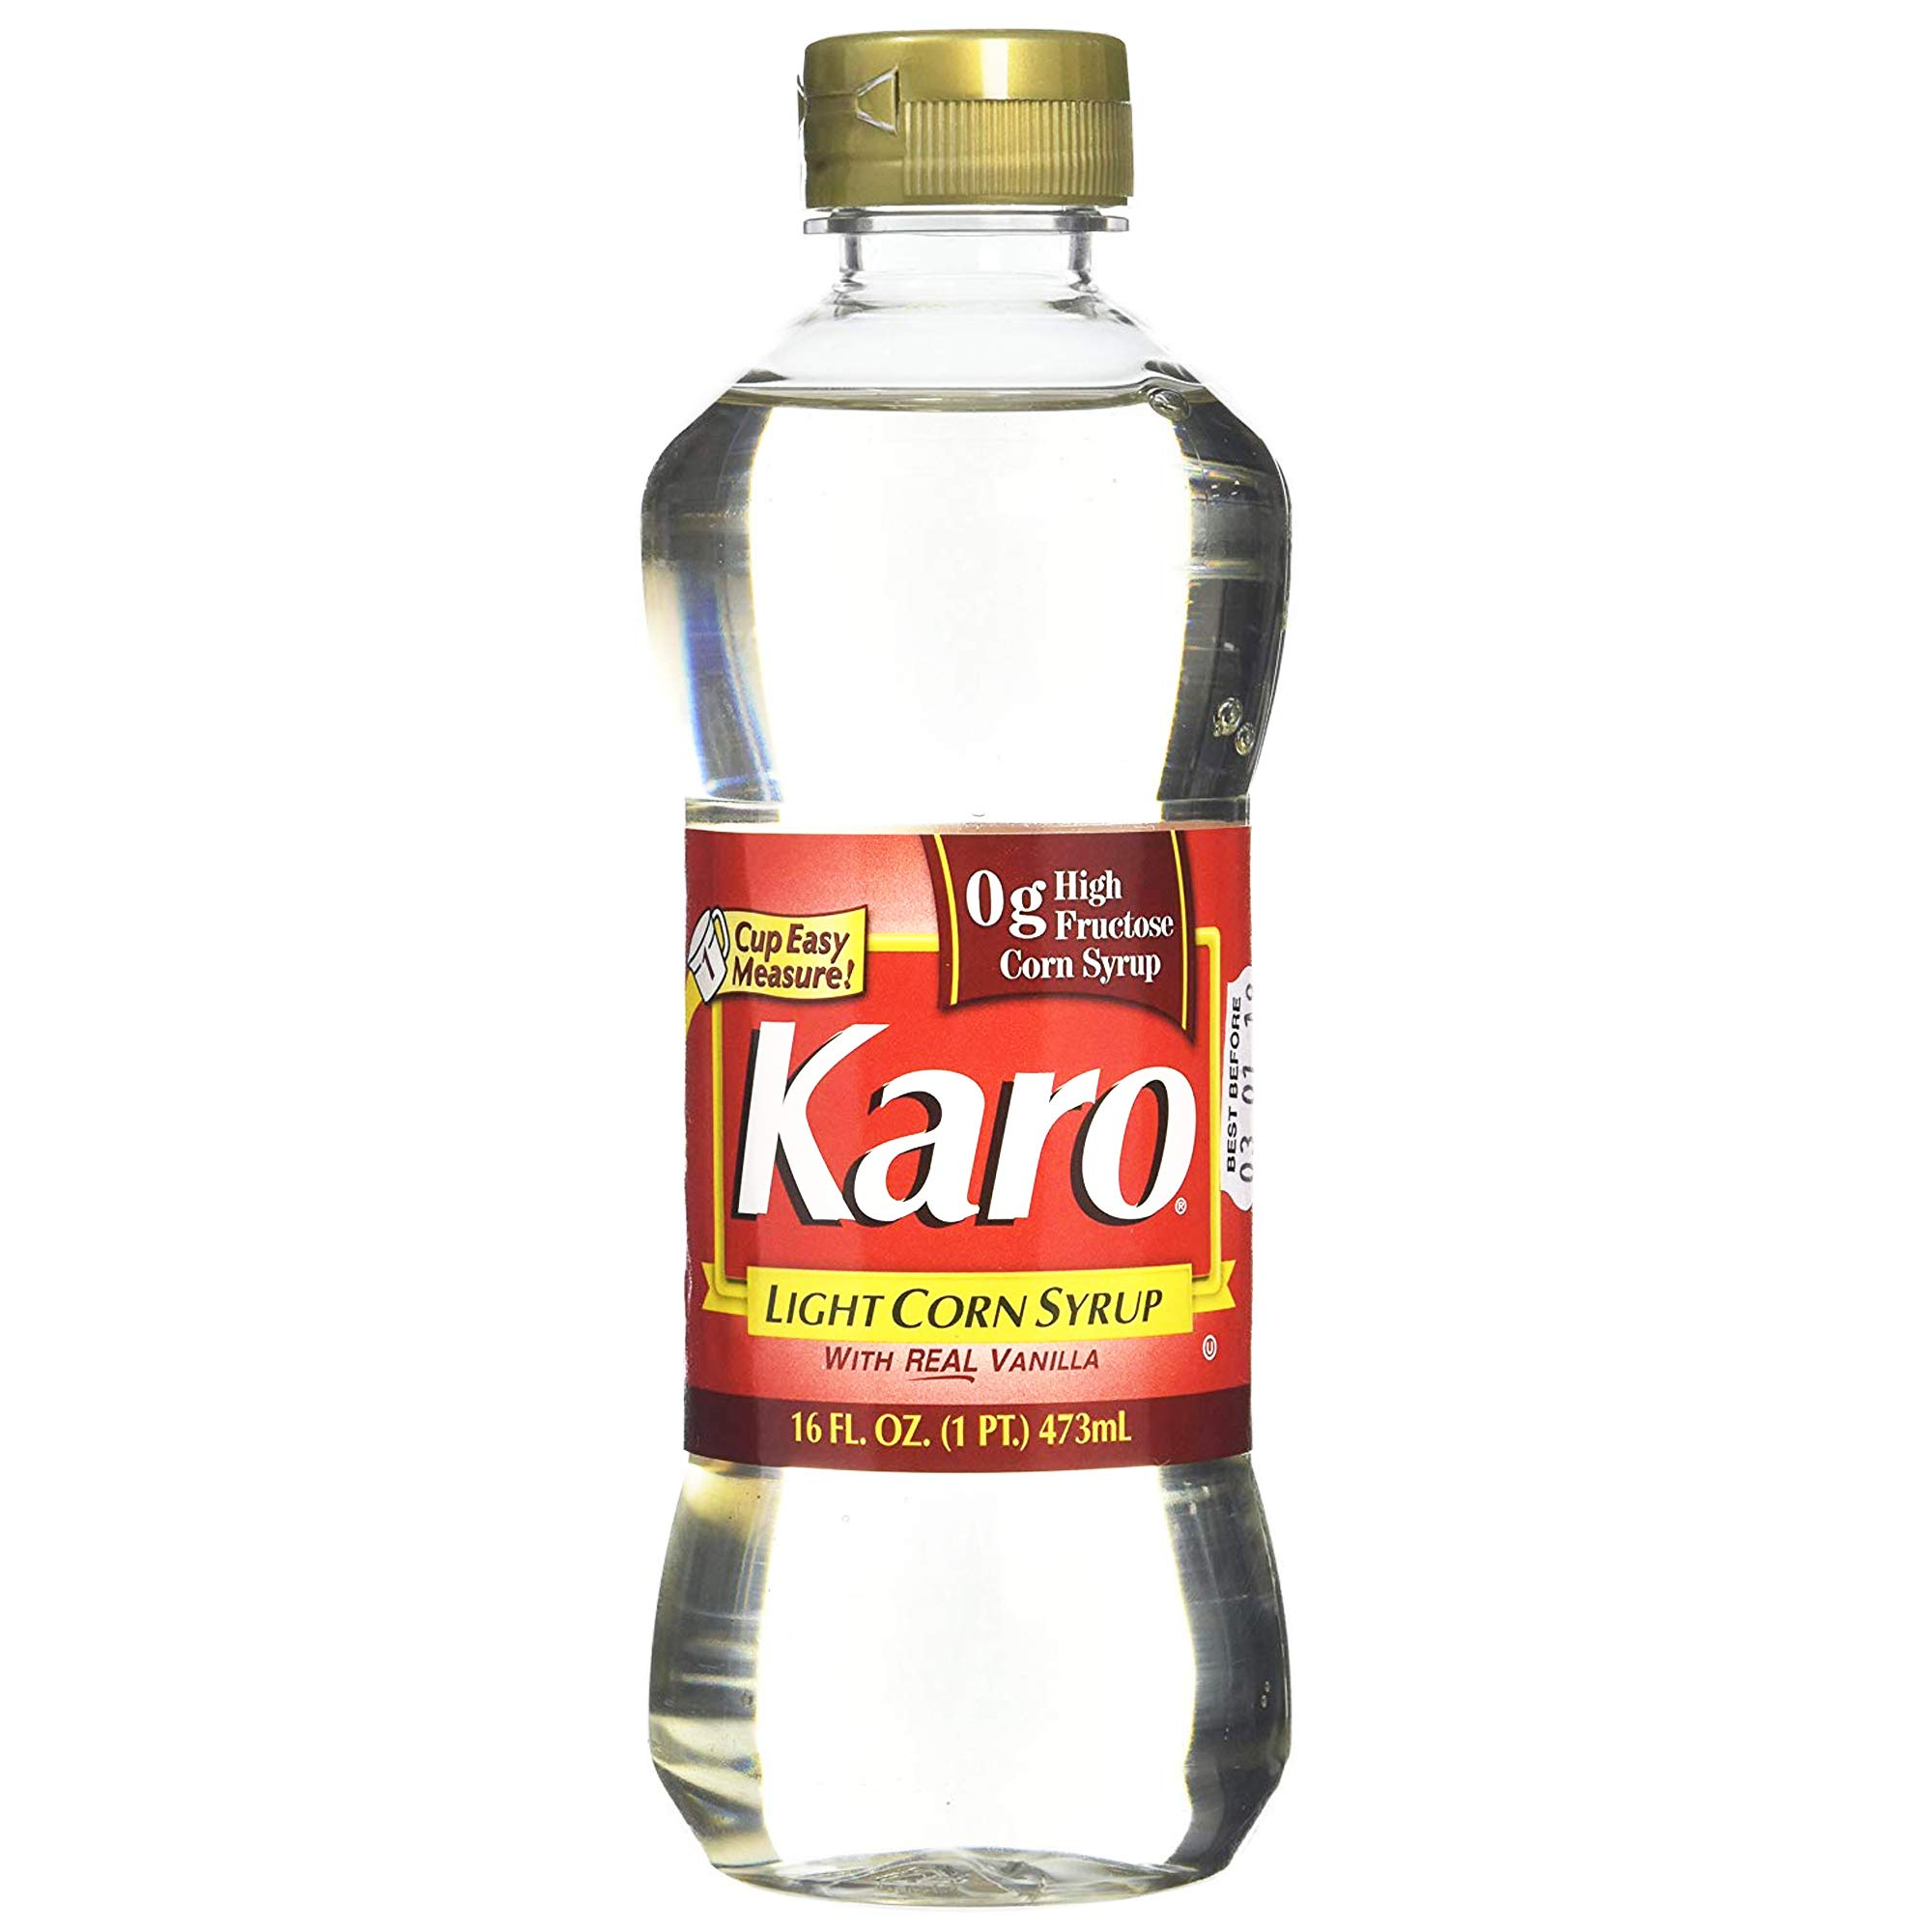 Karo Light Corn Syrup - Vanilla Flavoured - Gluten Free - High Fructose Corn Syrup Free - Ideal for Baking, 473 millimetre (Pack of 1)